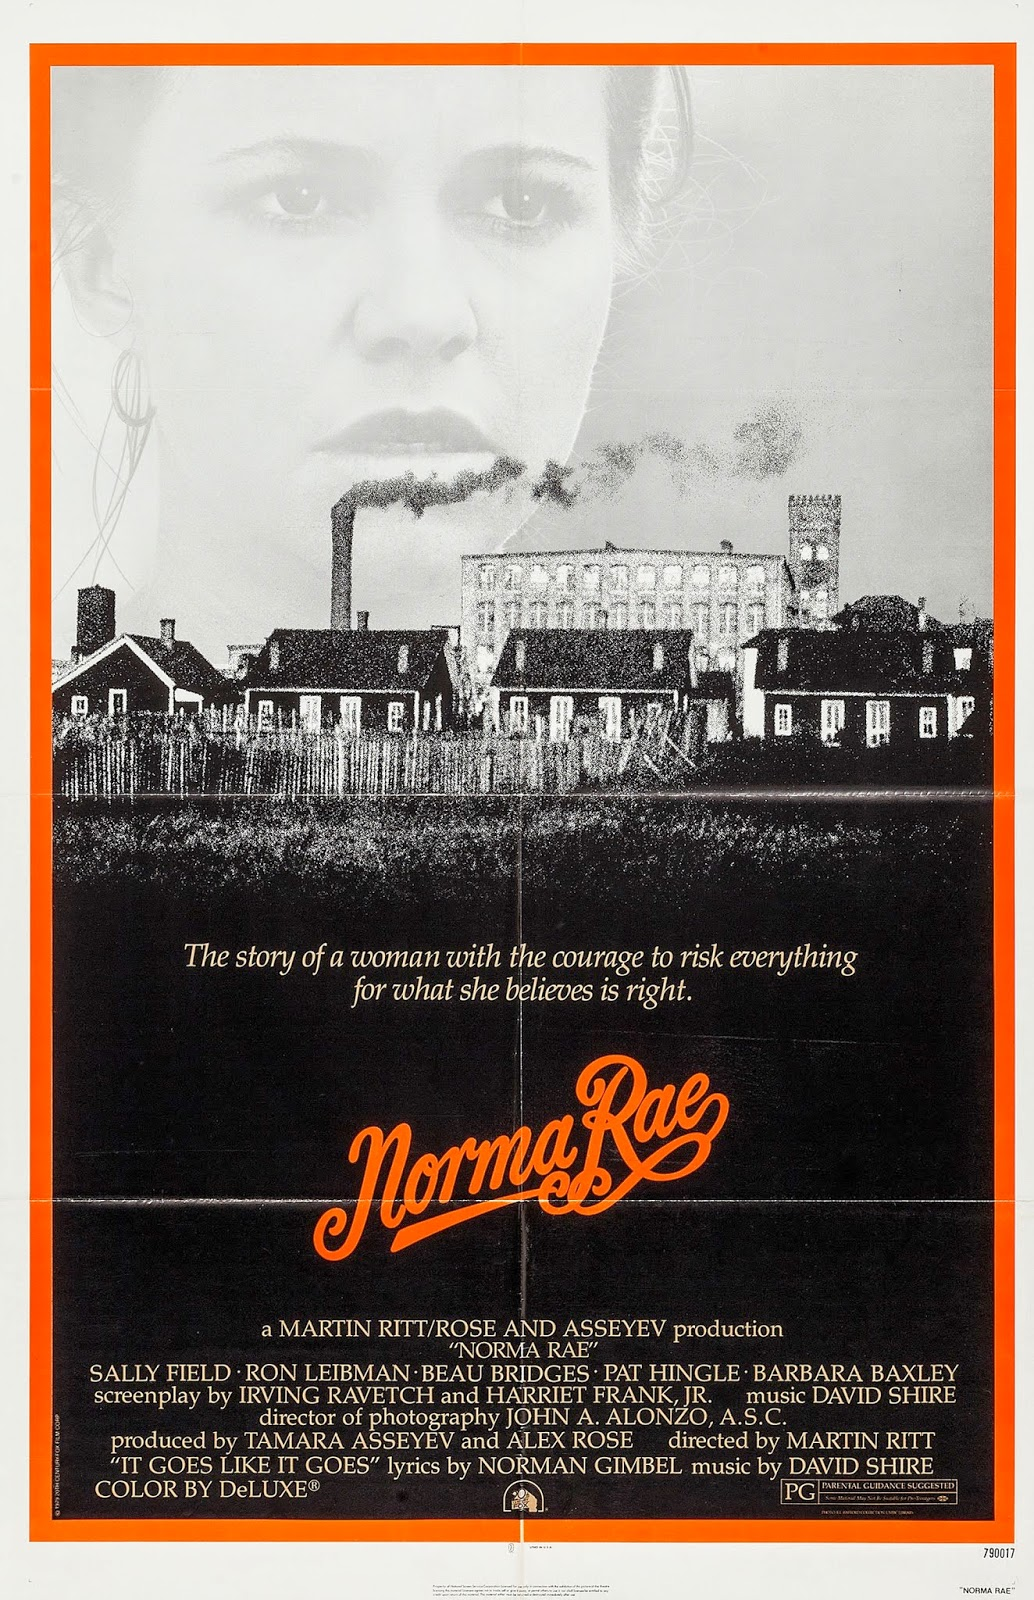 martin ritts norma rae essay Norma rae, stars sally field, beau bridges and ron liebman it was directed by martin ritt who was known for making socially conscious films about working class struggles and labor unions it was filmed in 1979, when many american jobs were being sent overseas and americans were facing economic.